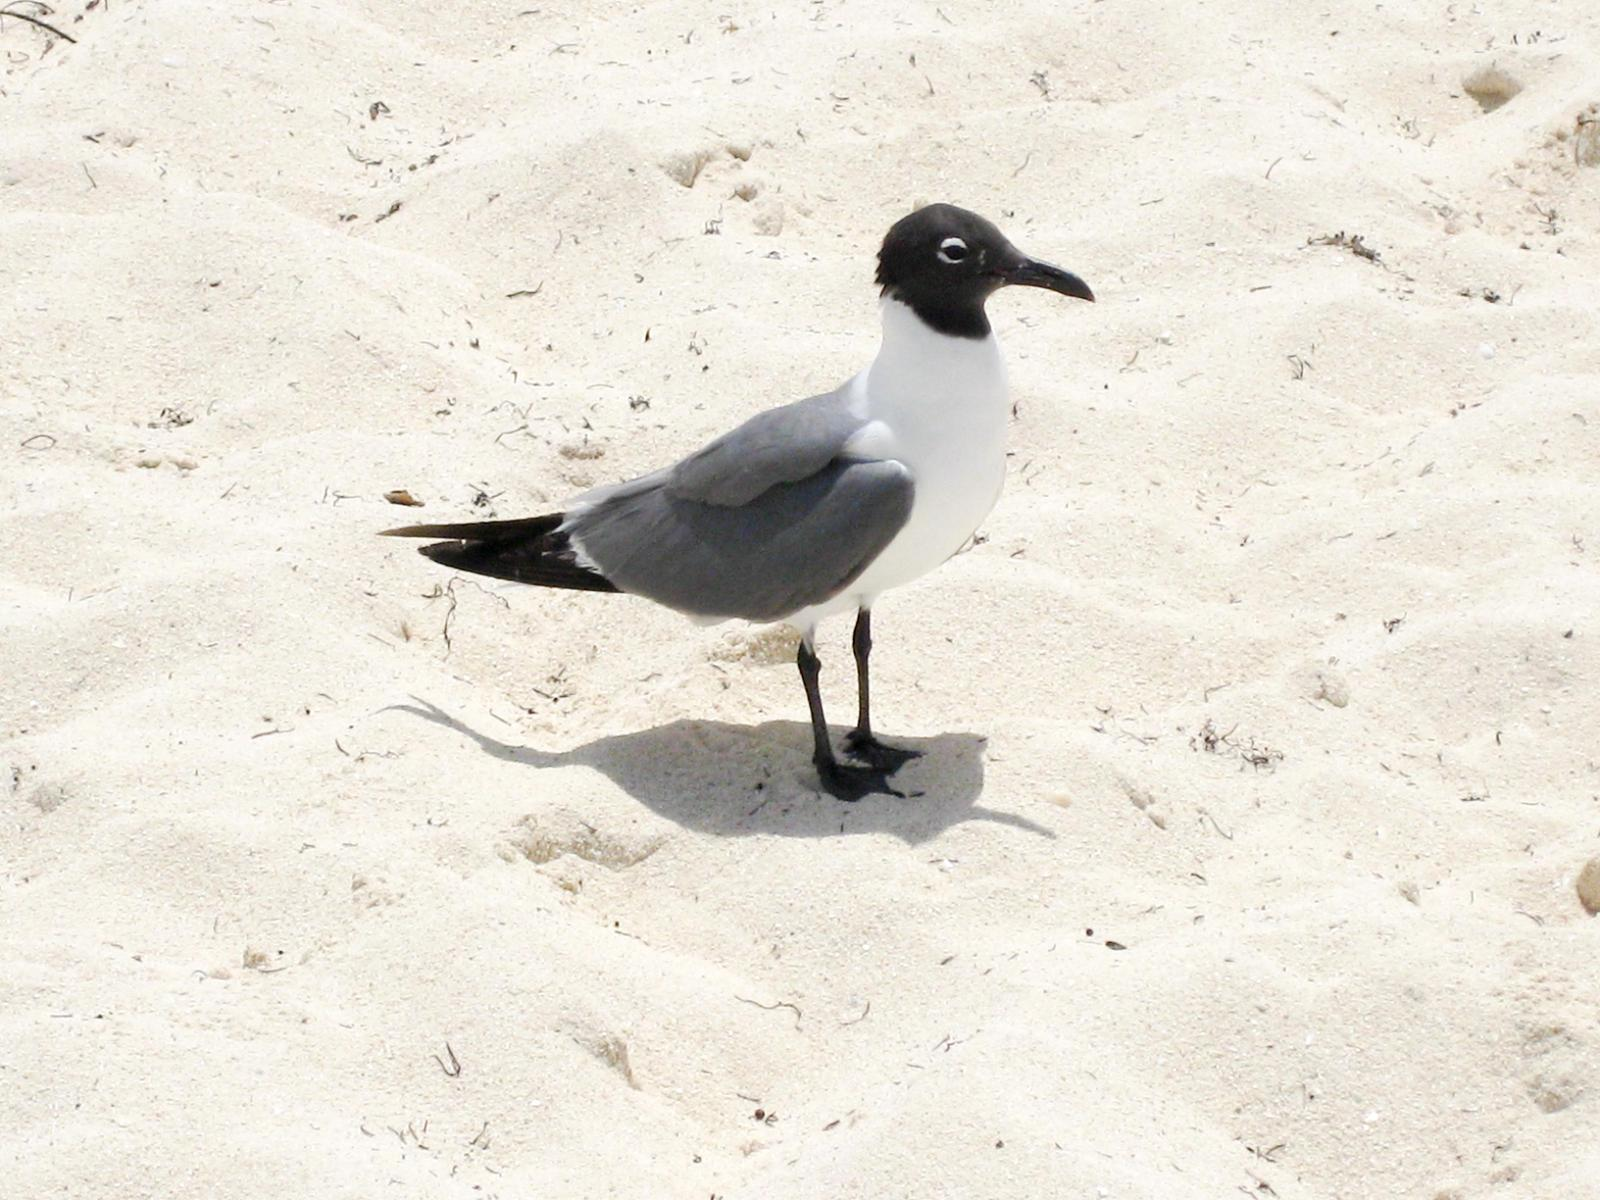 Laughing Gull Photo by Roseanne CALECA